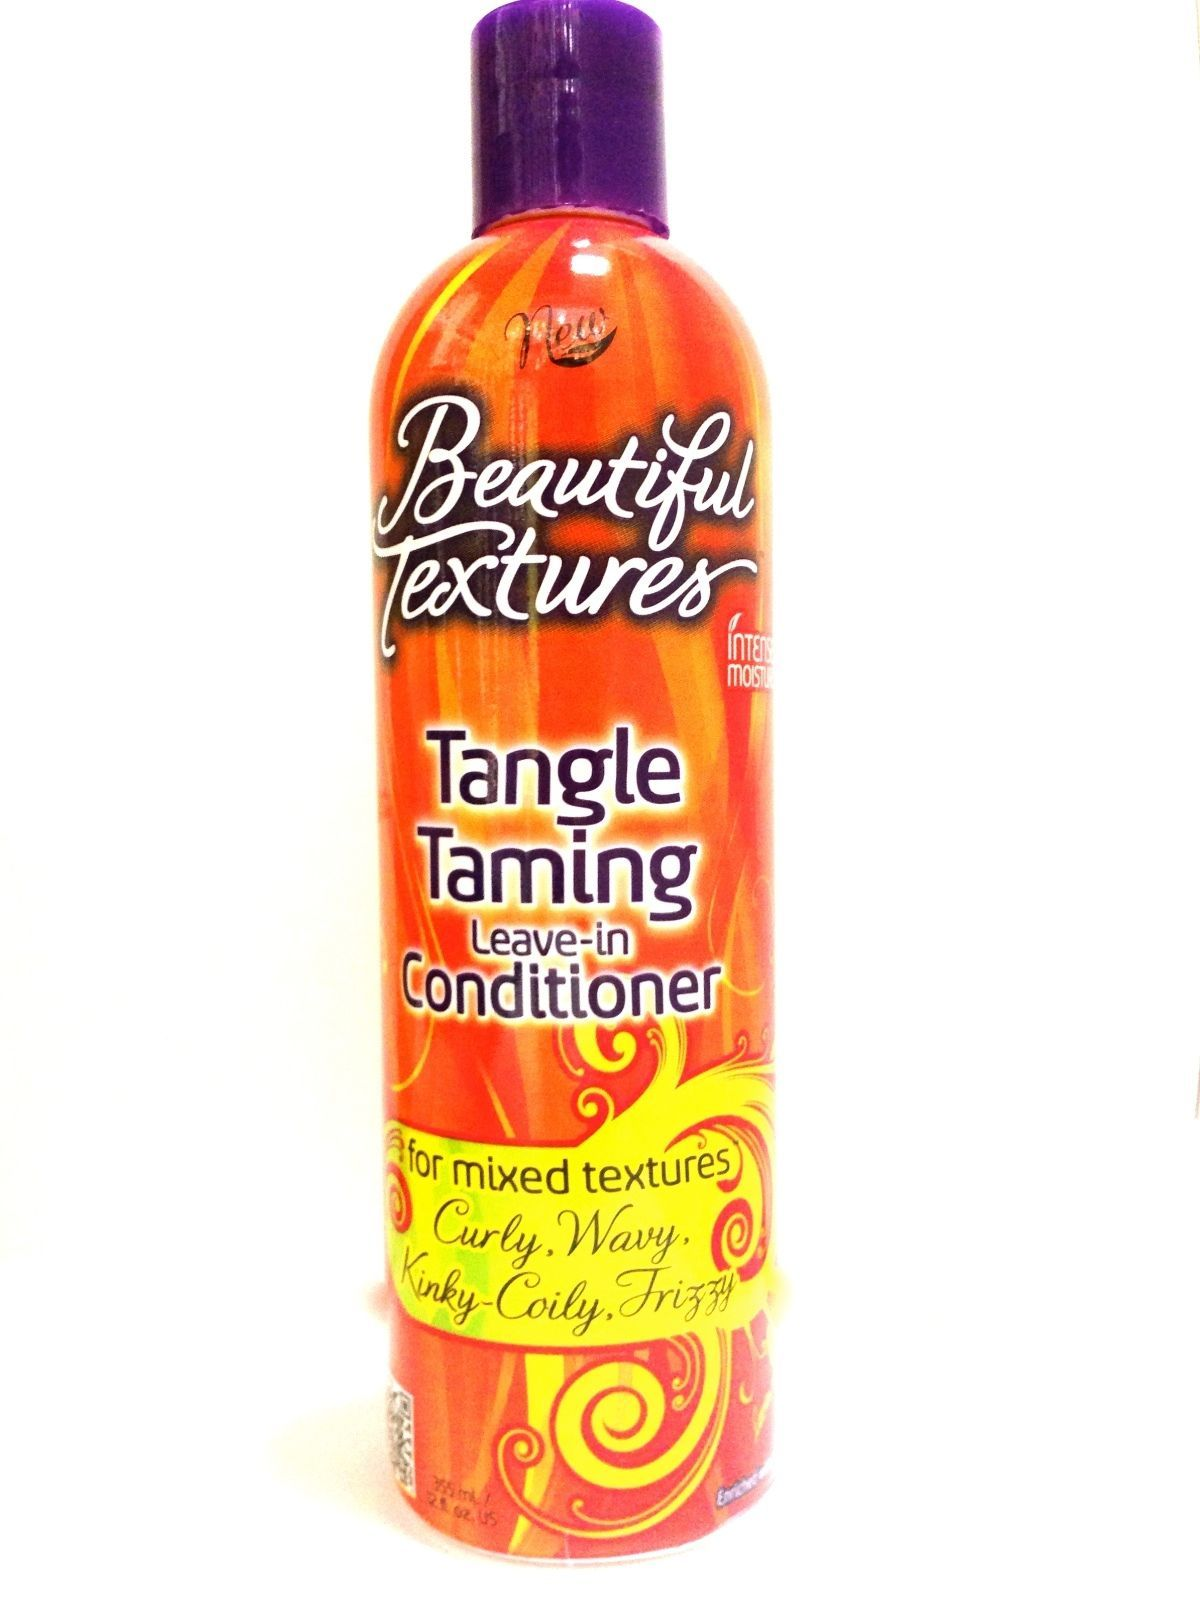 BEAUTIFUL TEXTURES TANGLE TAMING LEAVE IN CONDITIONER FOR MIXED TEXTURES 12oz